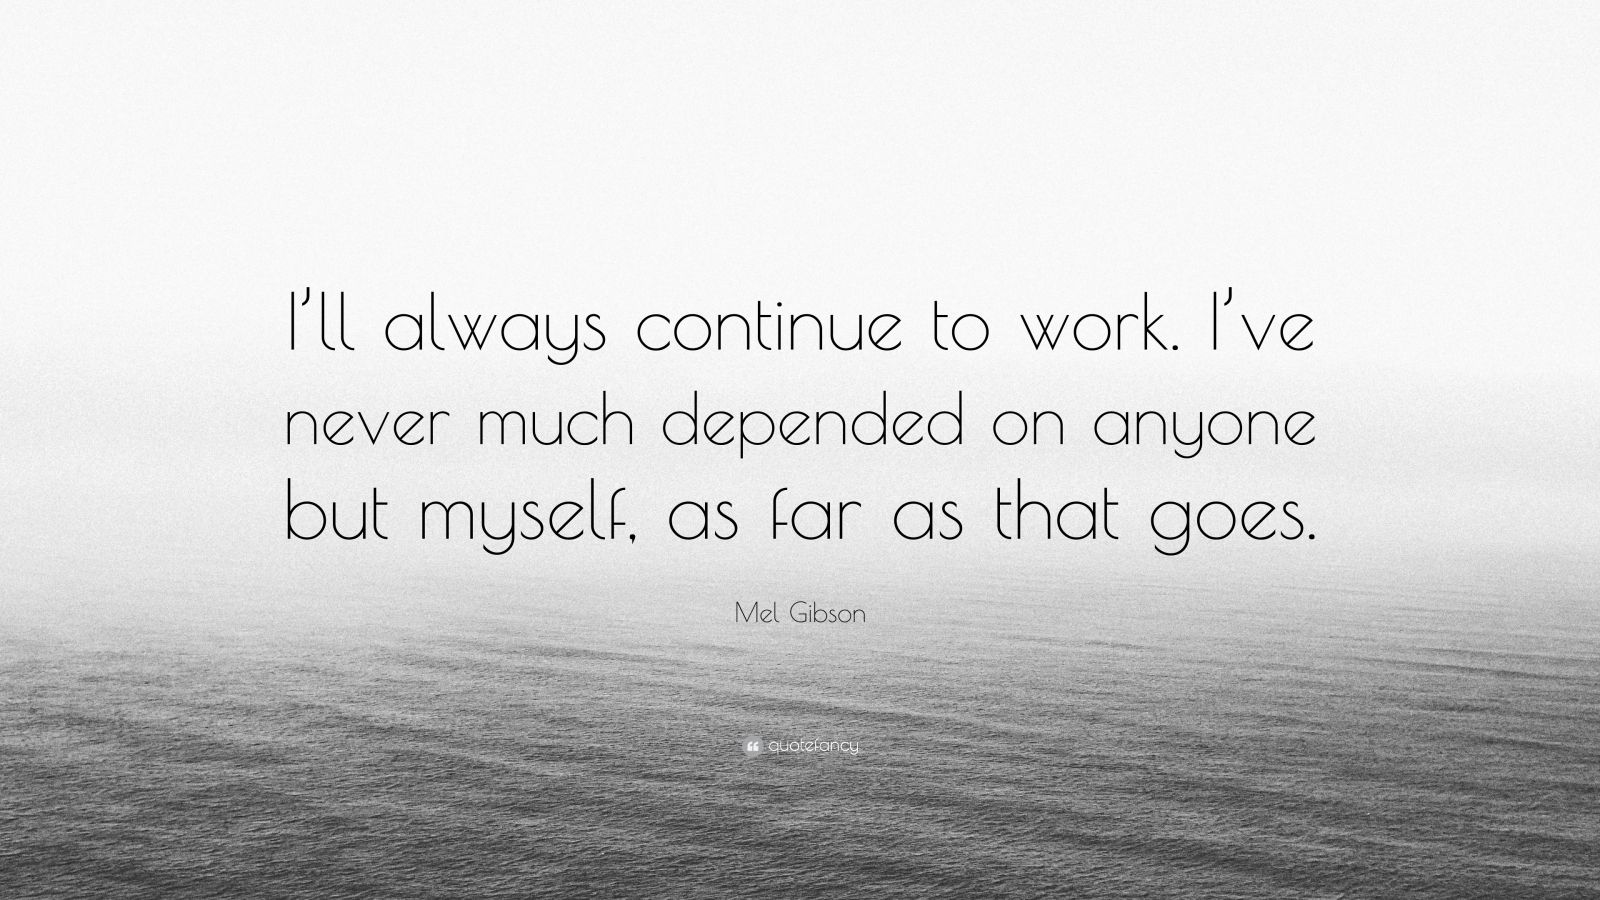 """Mel Gibson Quote: """"I'll always continue to work. I've never much depended on anyone but myself, as far as that goes."""""""